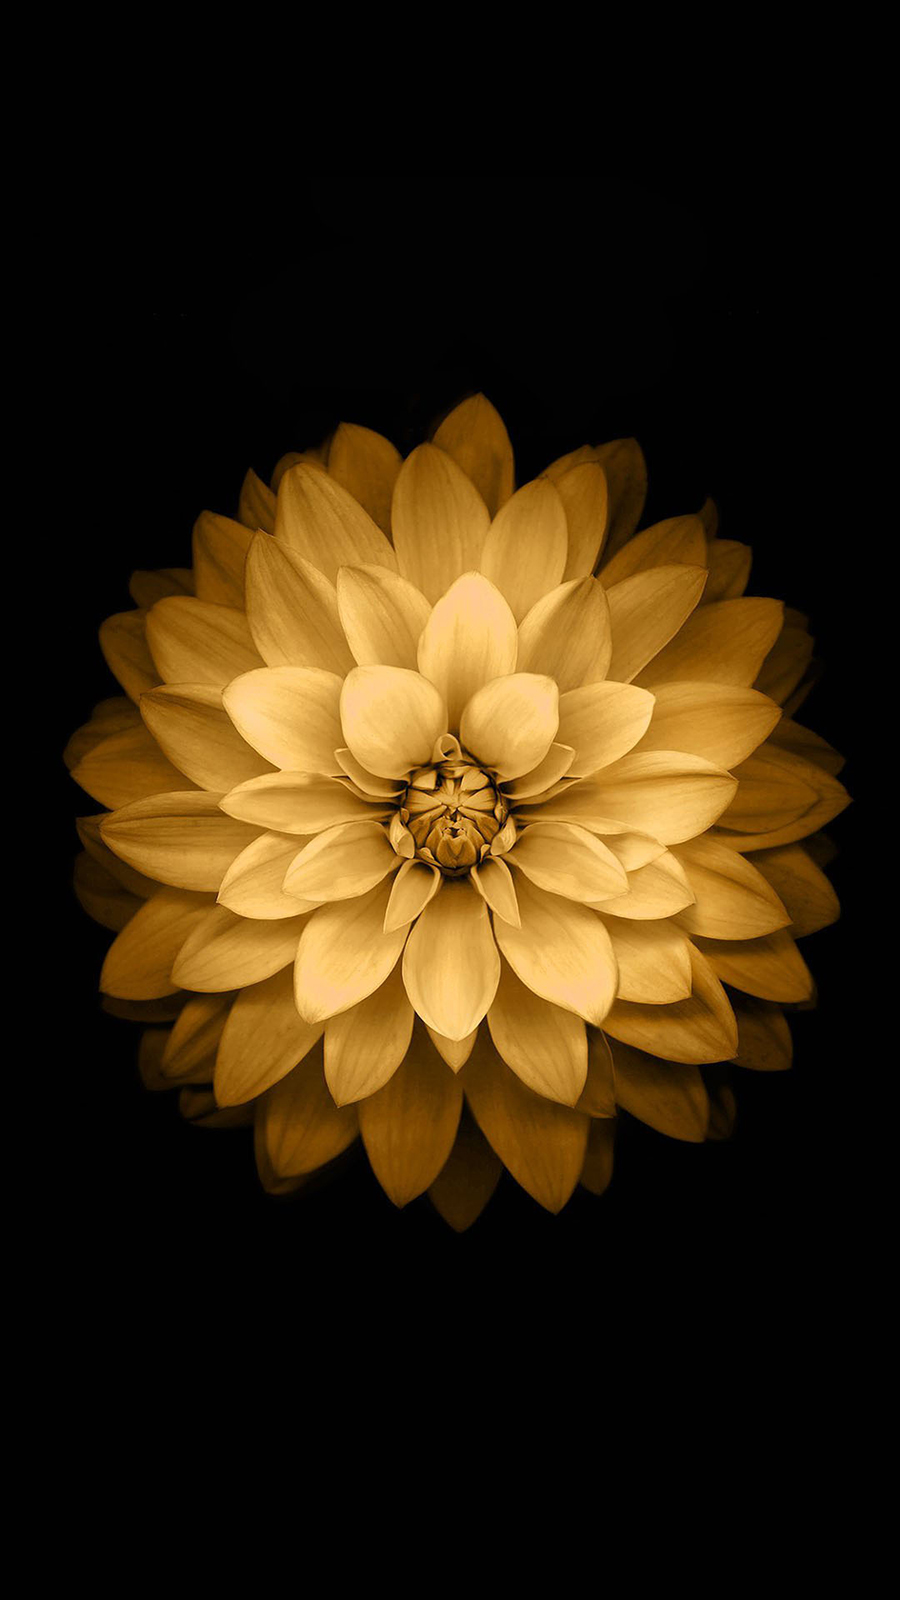 Golden Lotus Flower iOS Android Wallpaper